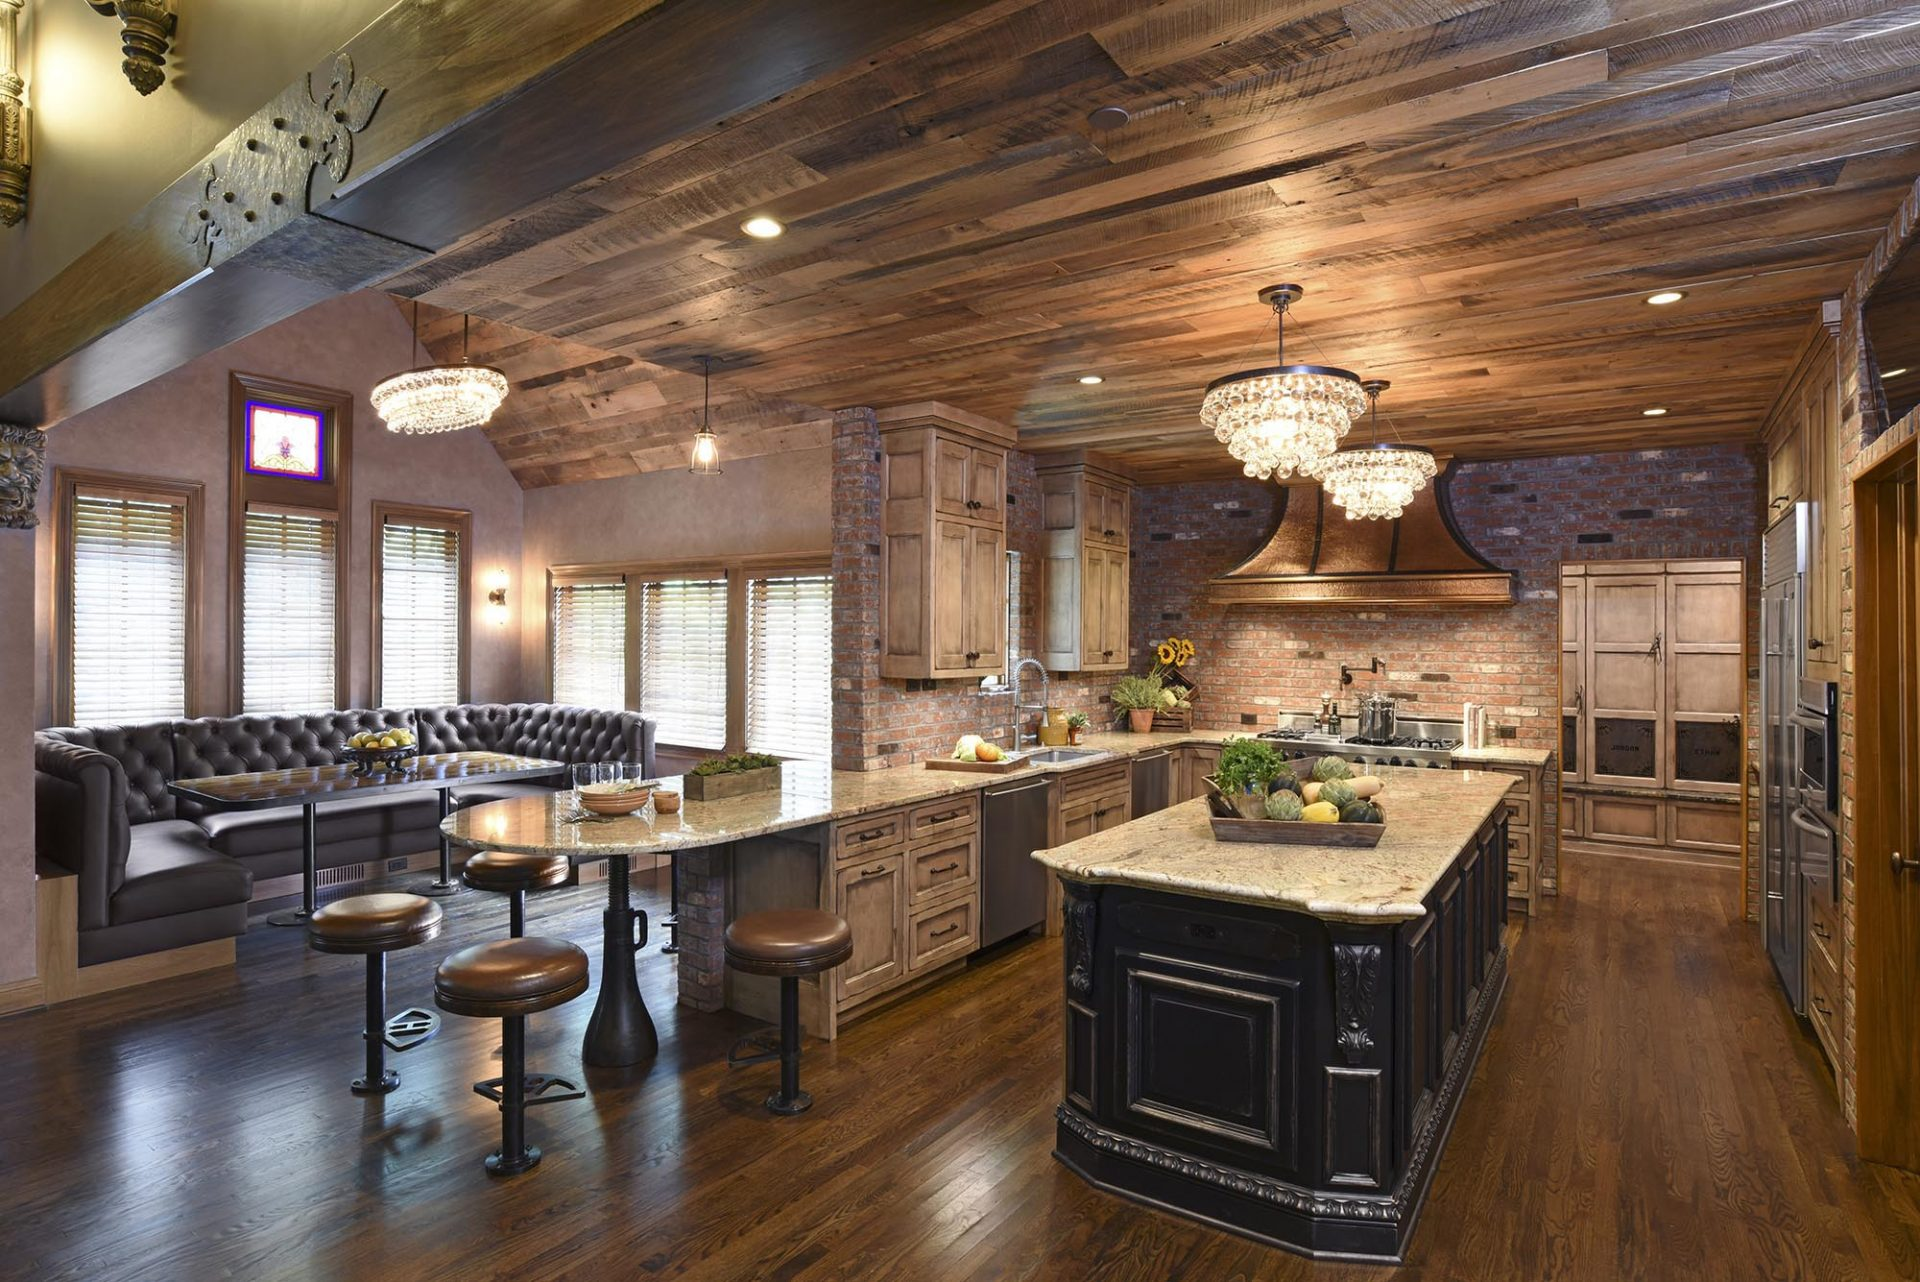 Kitchen remodel, dining, New Albany, Dave Fox, Remodel, wood, brick, rustic, copper, range, island, chandelier, bar stools, wood ceilings